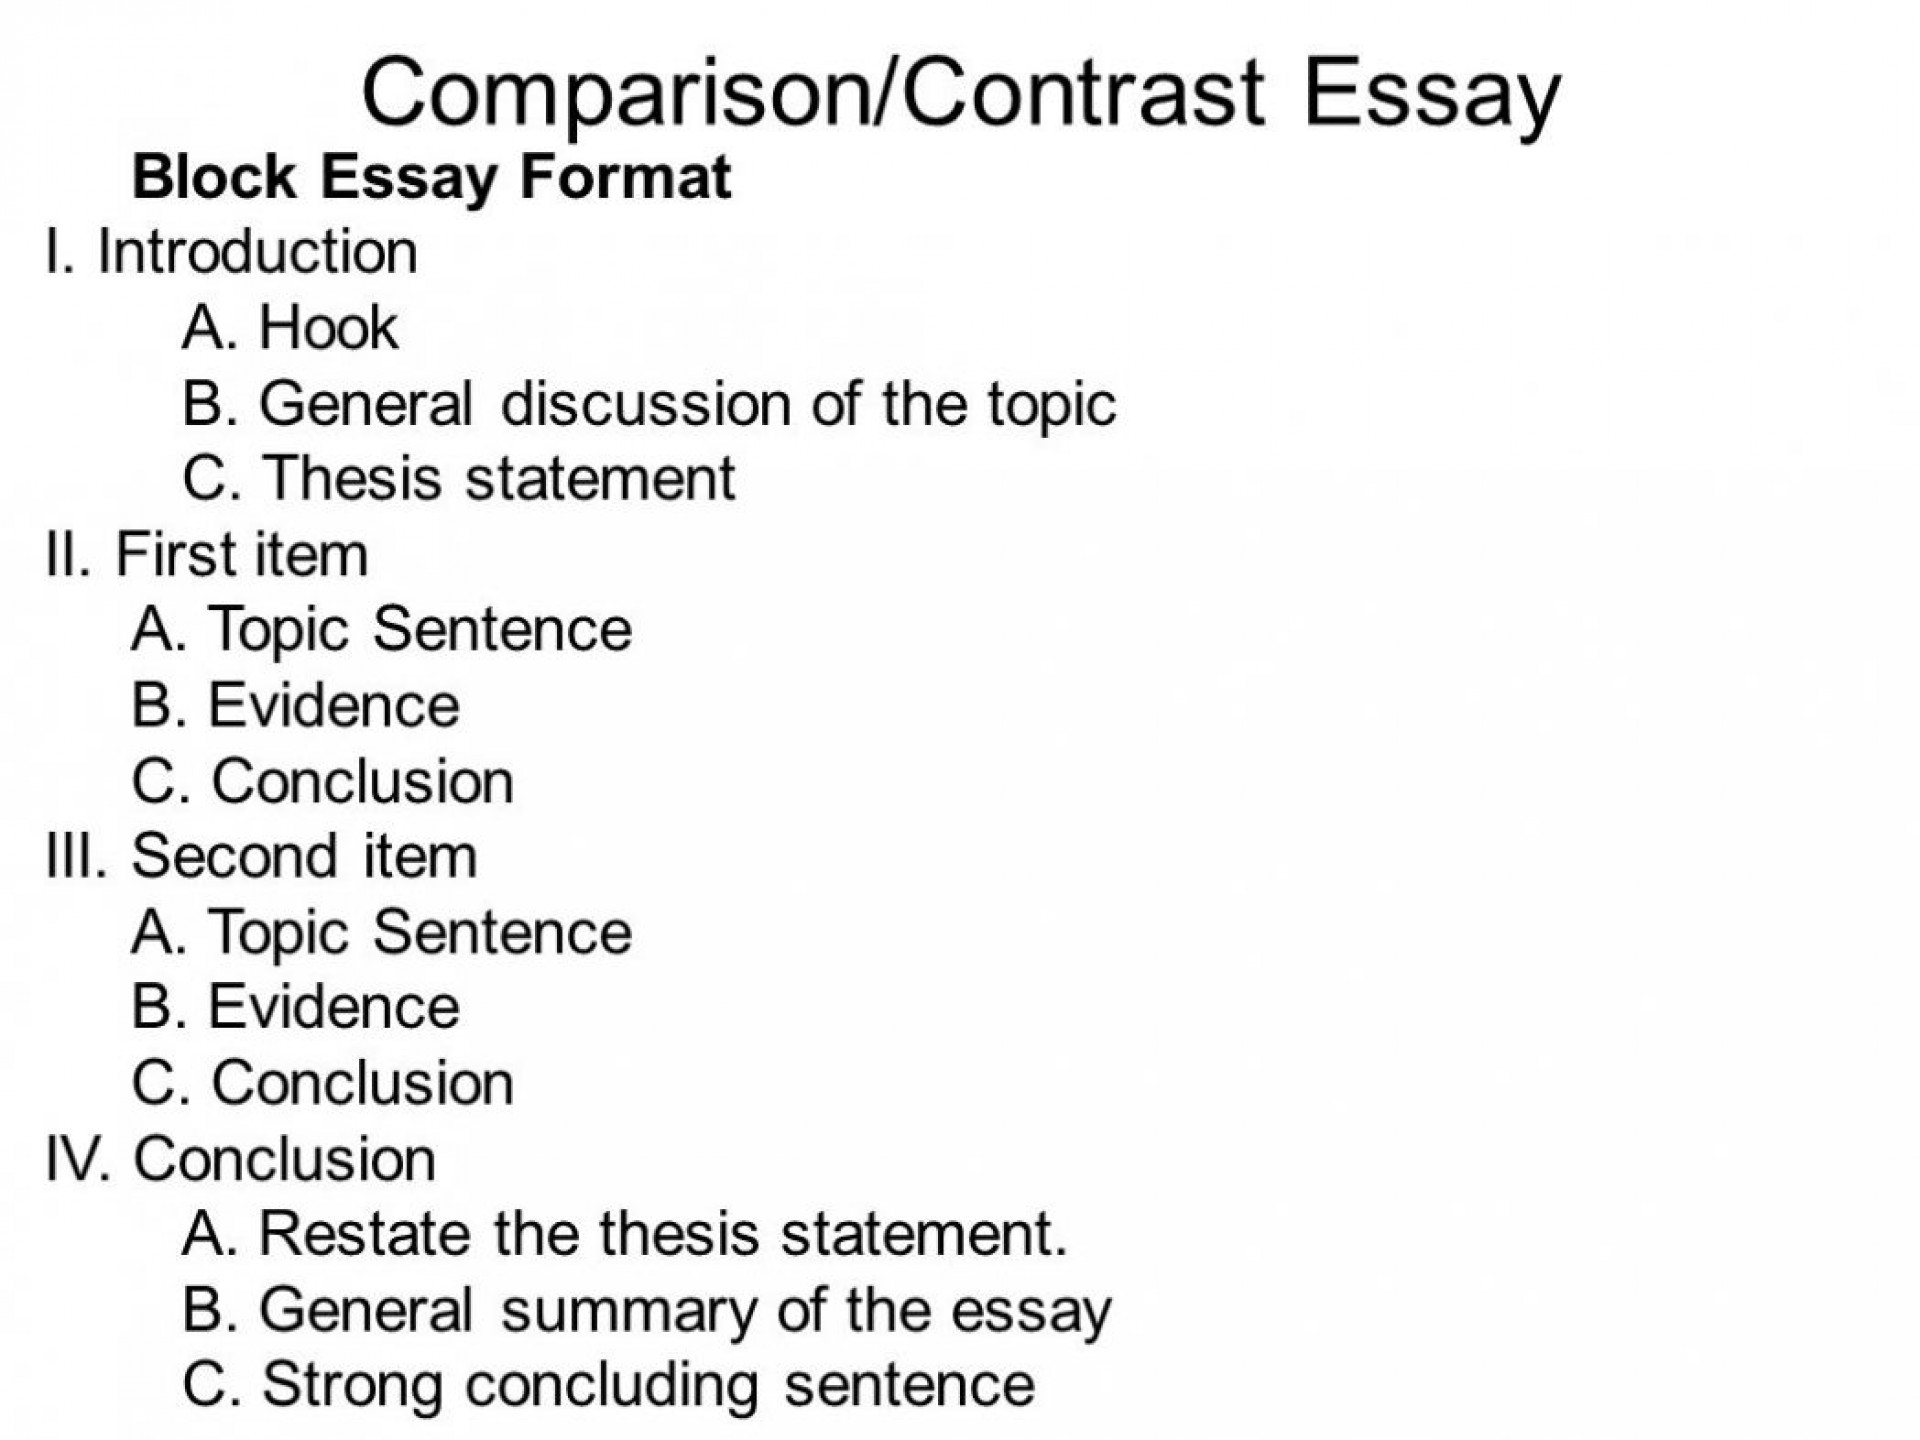 014 Compare And Contrast Essay Introduction Paragraph Sli How To Write An For Argumentative 1048x786 Formidable Example Sample Intro Examples Good Essays 1920